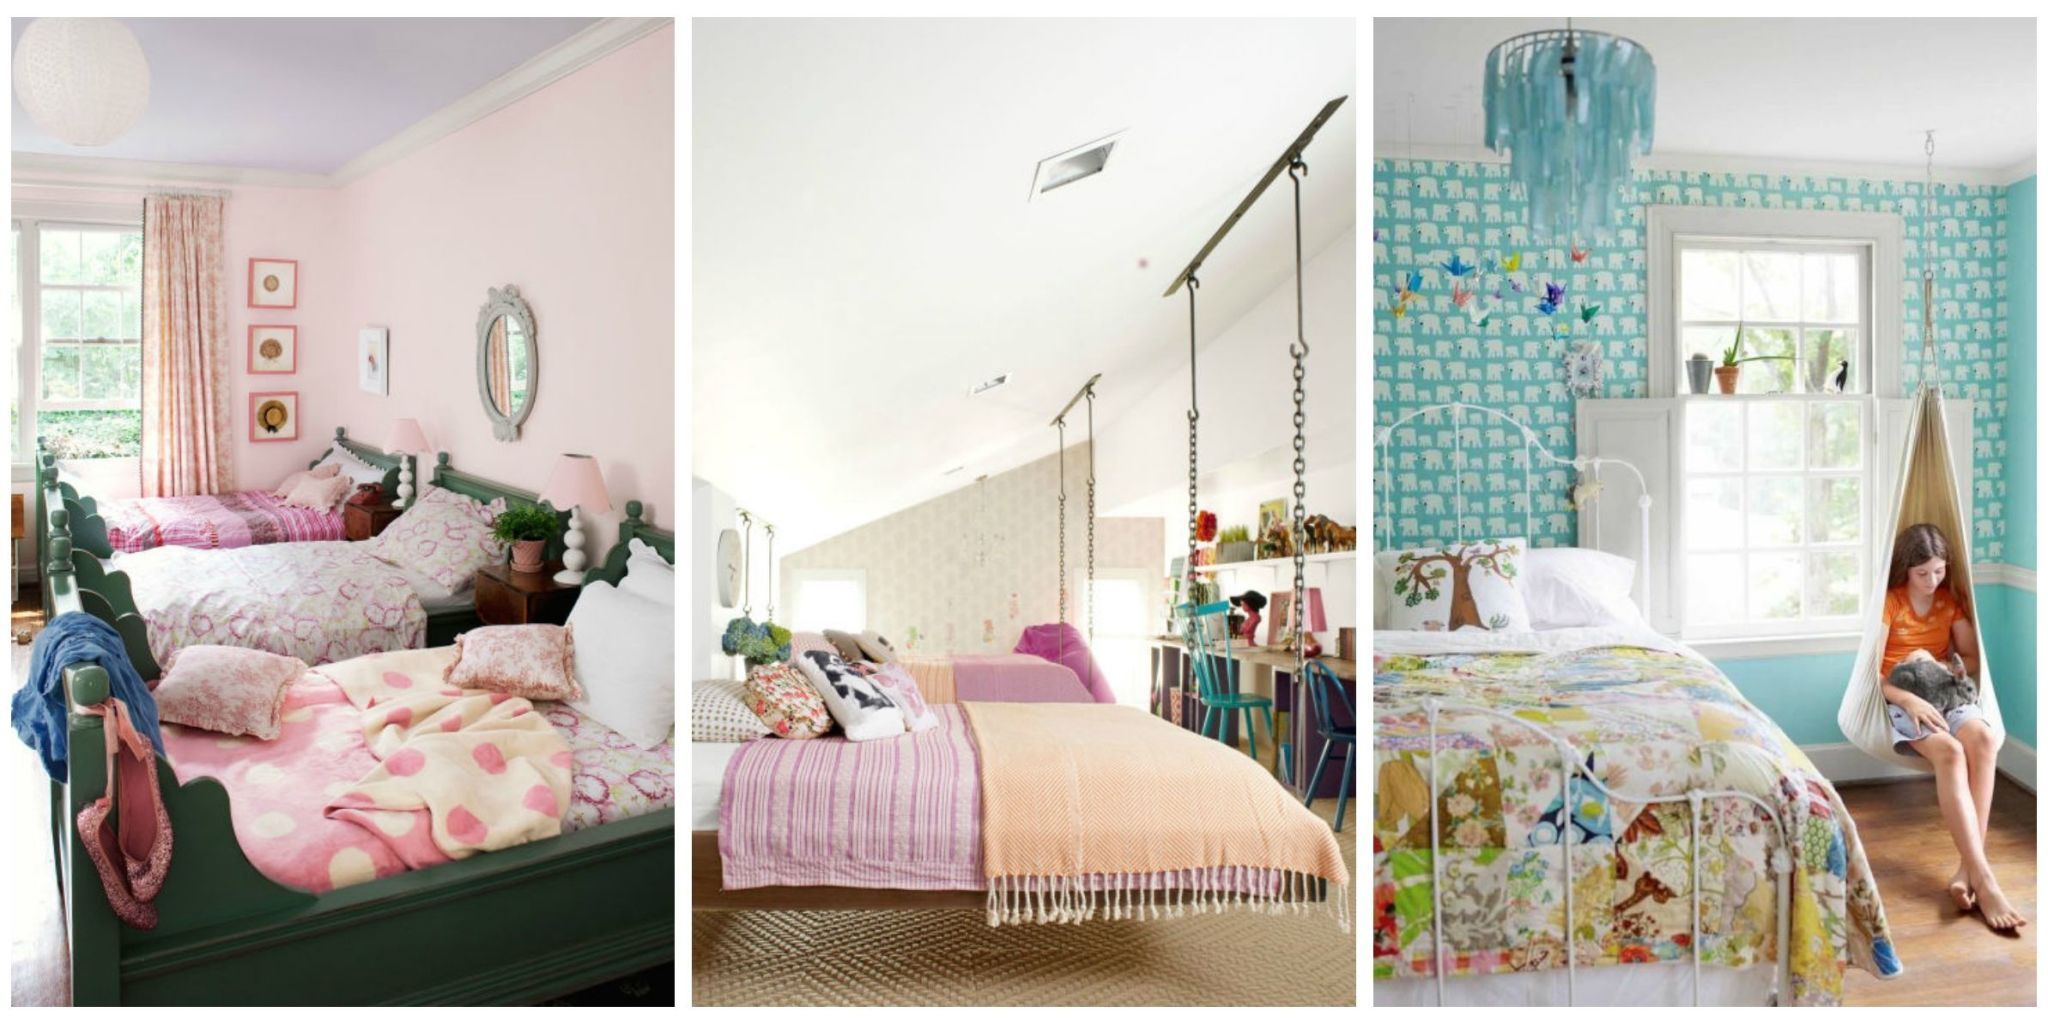 Room Design from Home Gami